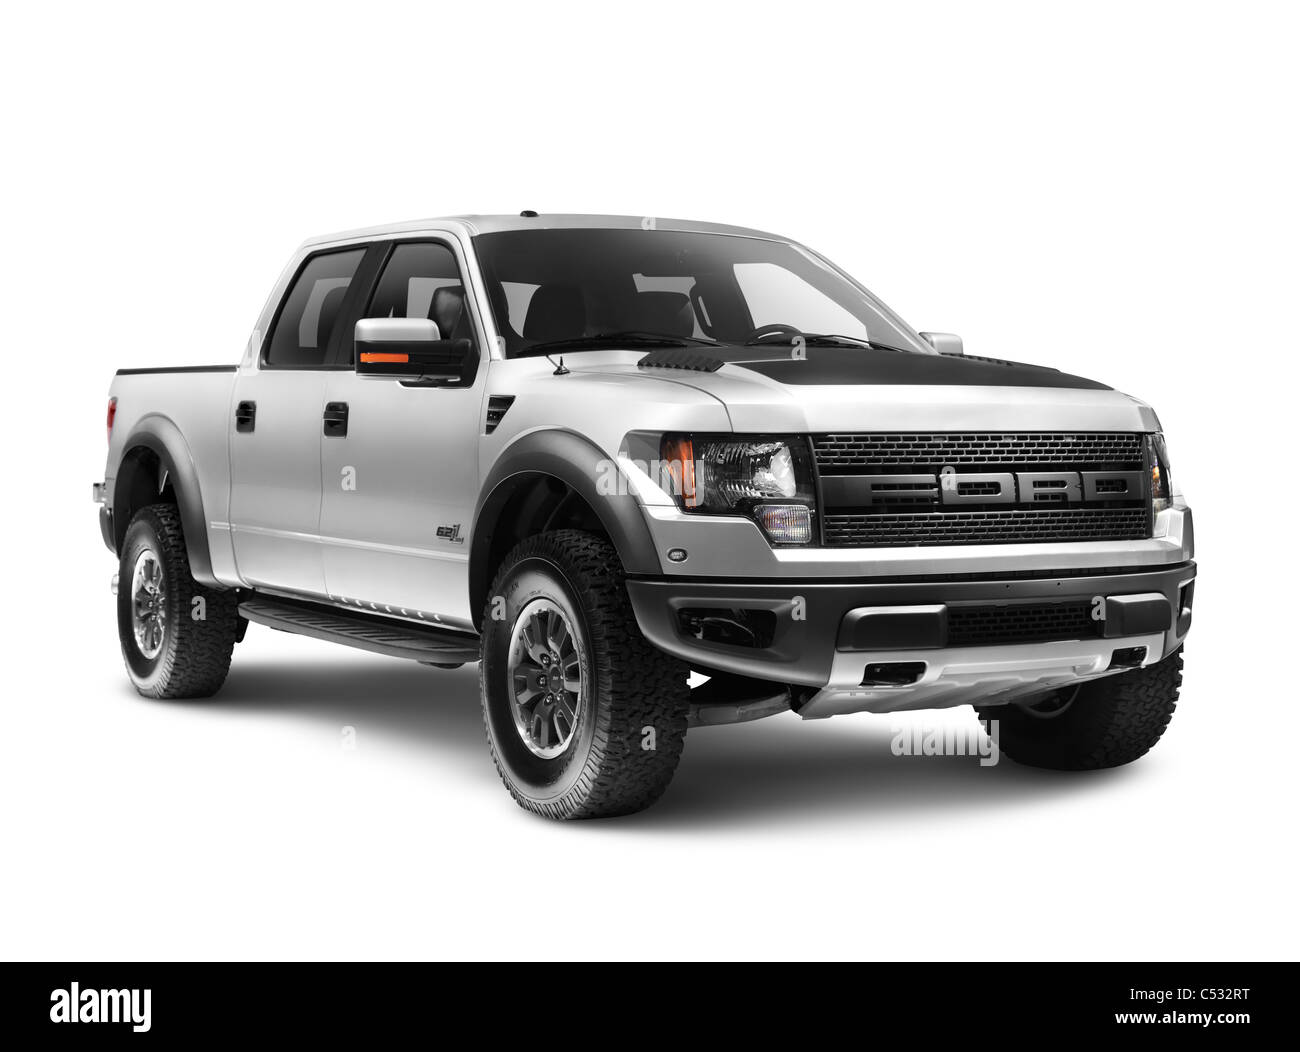 Ford F 150 White Gallery Of Ford F 150 White With Ford F